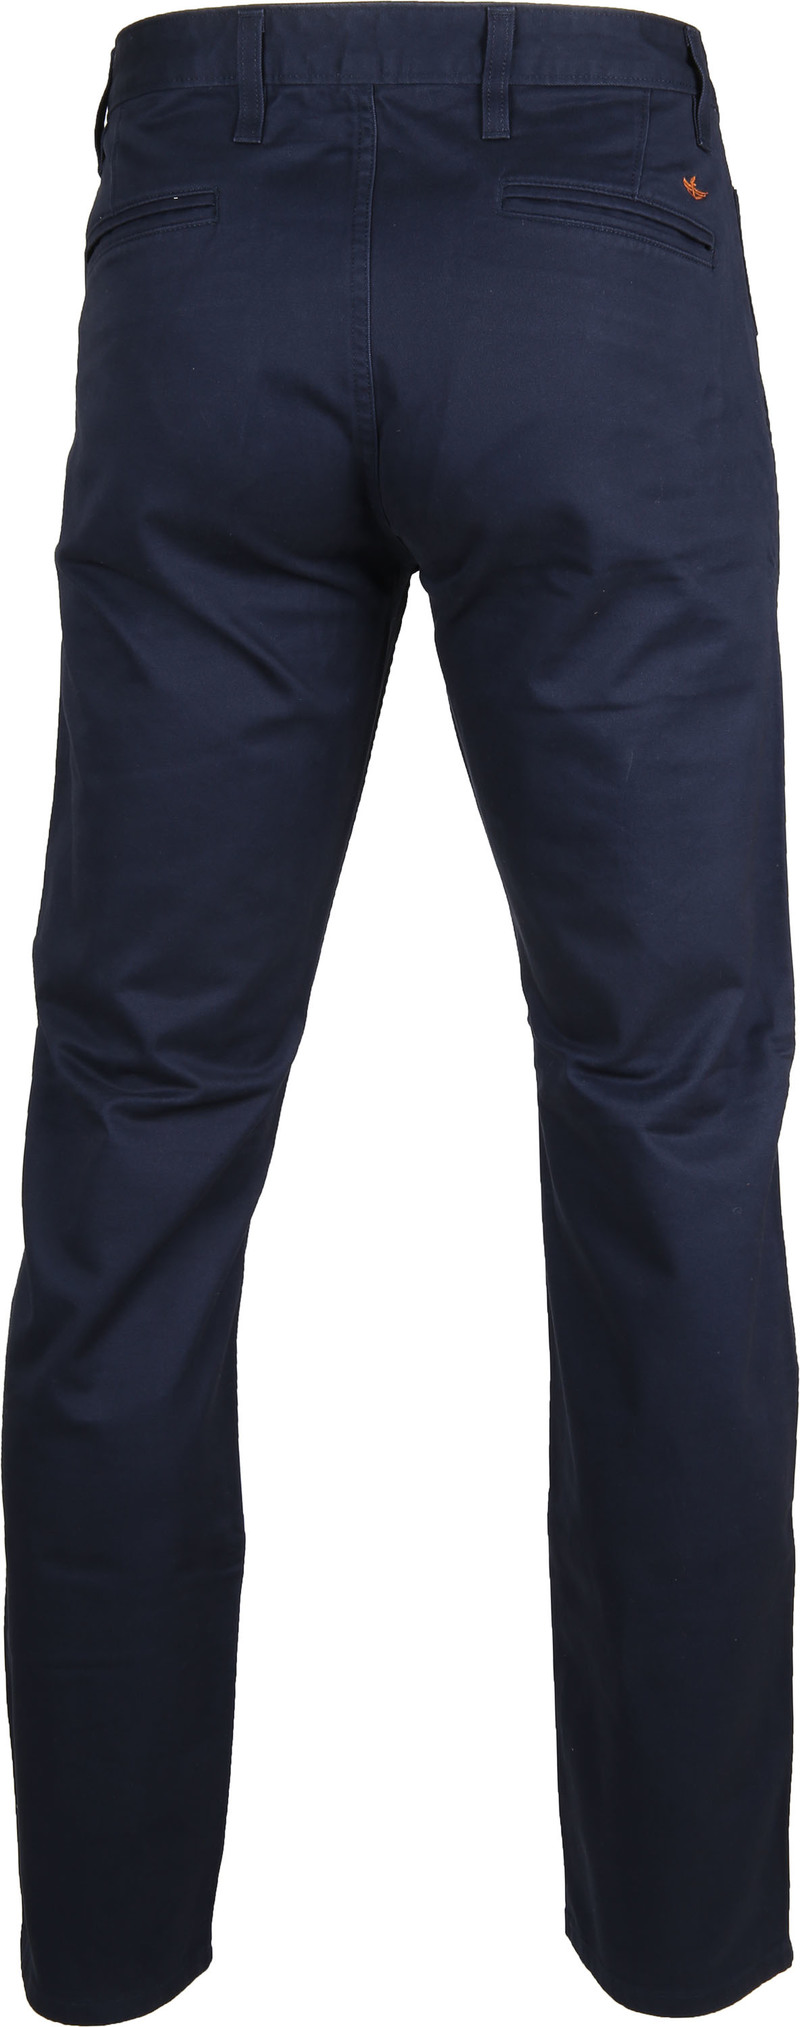 Dockers Alpha Stretch Navy foto 4